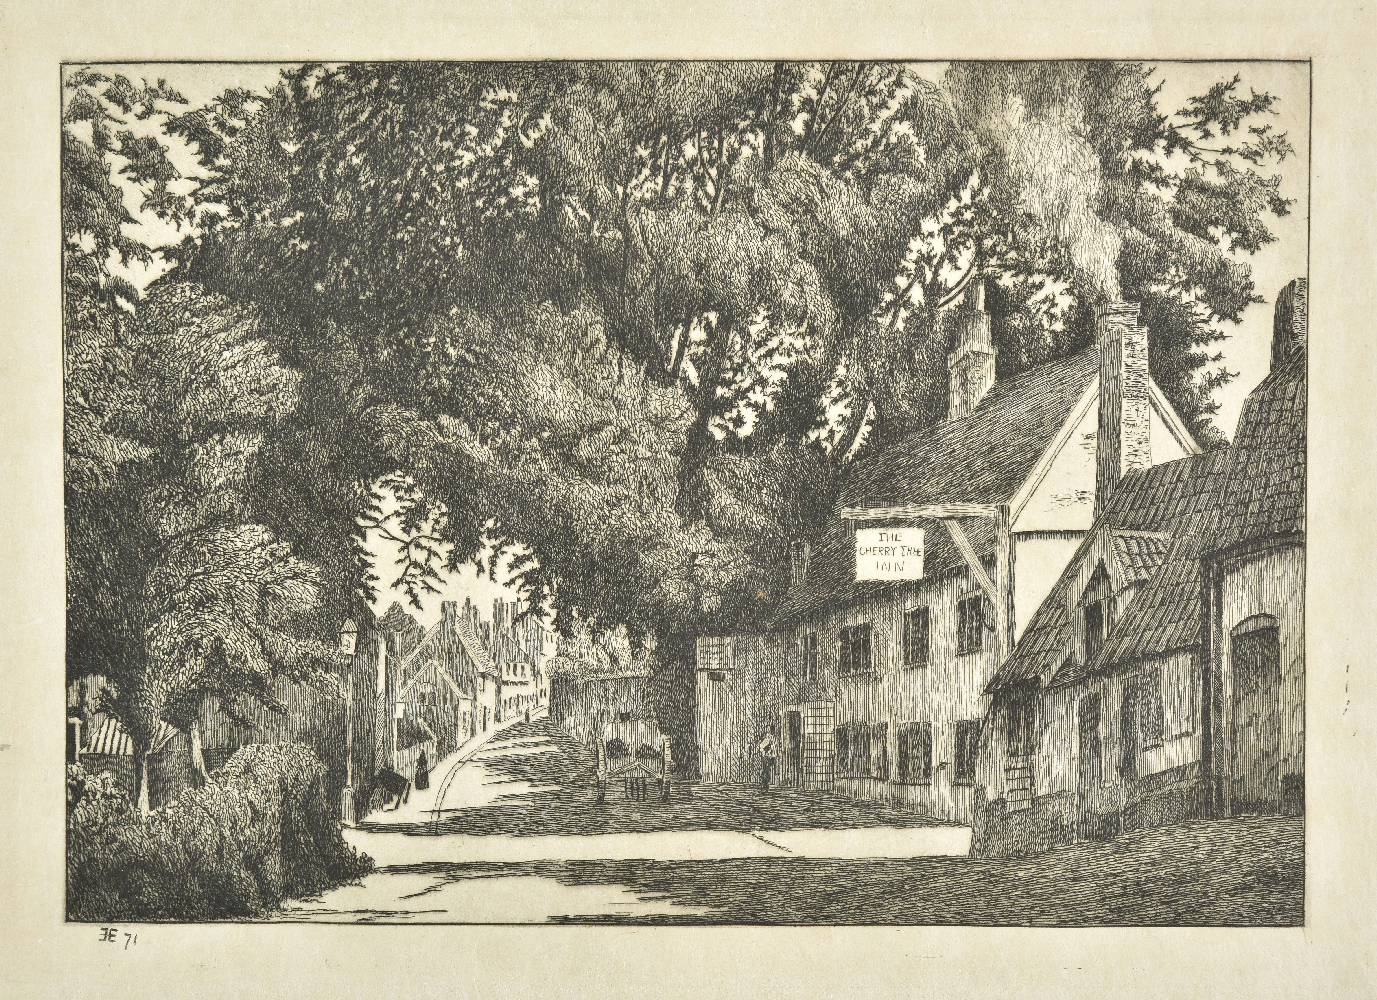 Lot 16 - Edwards (Edwin). Old Inns, 3 volumes in one, 1873, 1880 & 1881, 135 etched plates (including